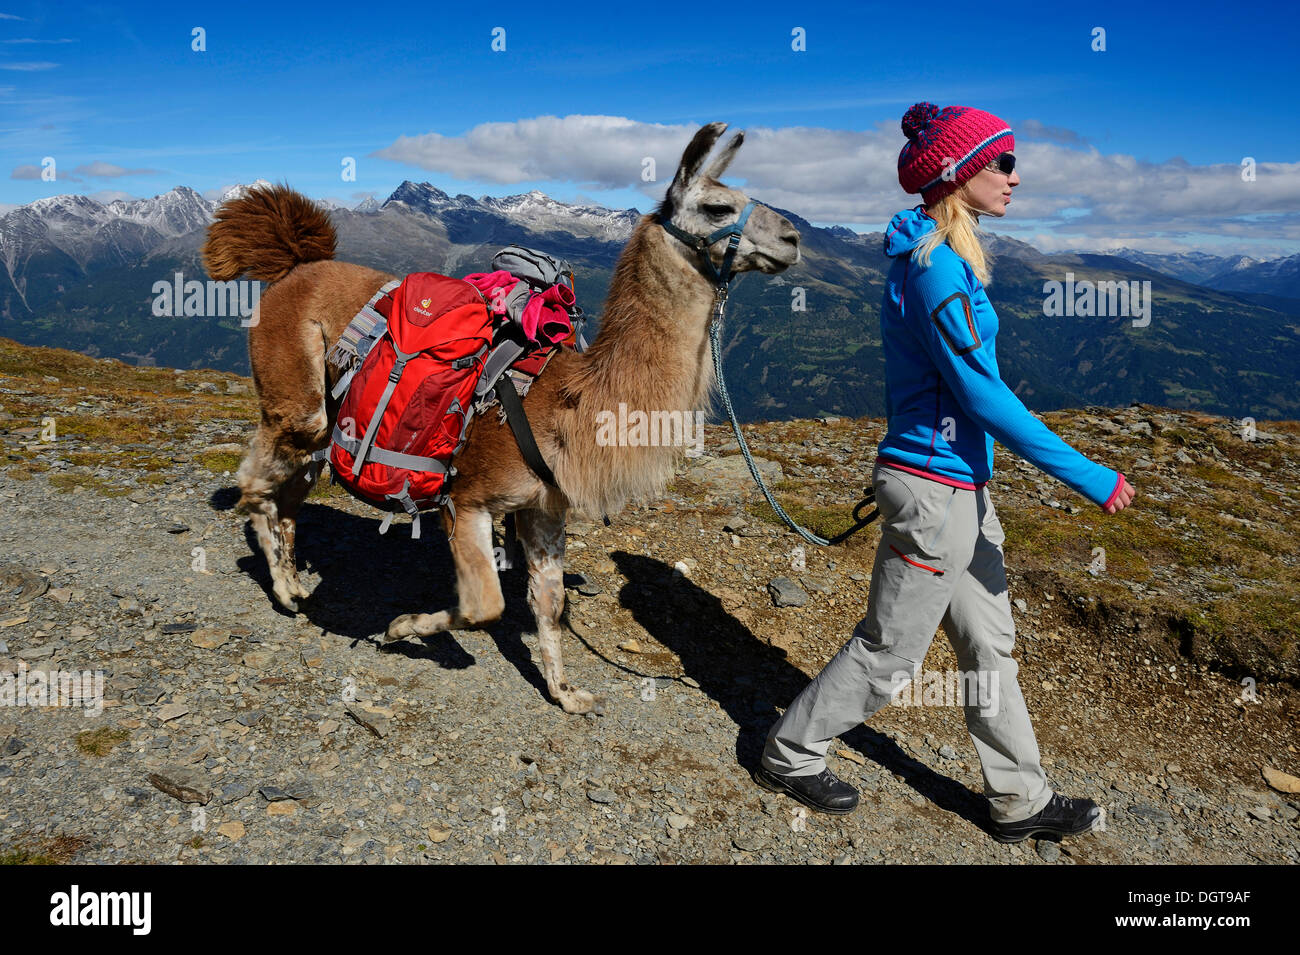 Llama tour at the summit of Boeses Weibele Mountain in the Defregger Group, Carnic Dolomites, Upper Lienz, Puster Valley - Stock Image